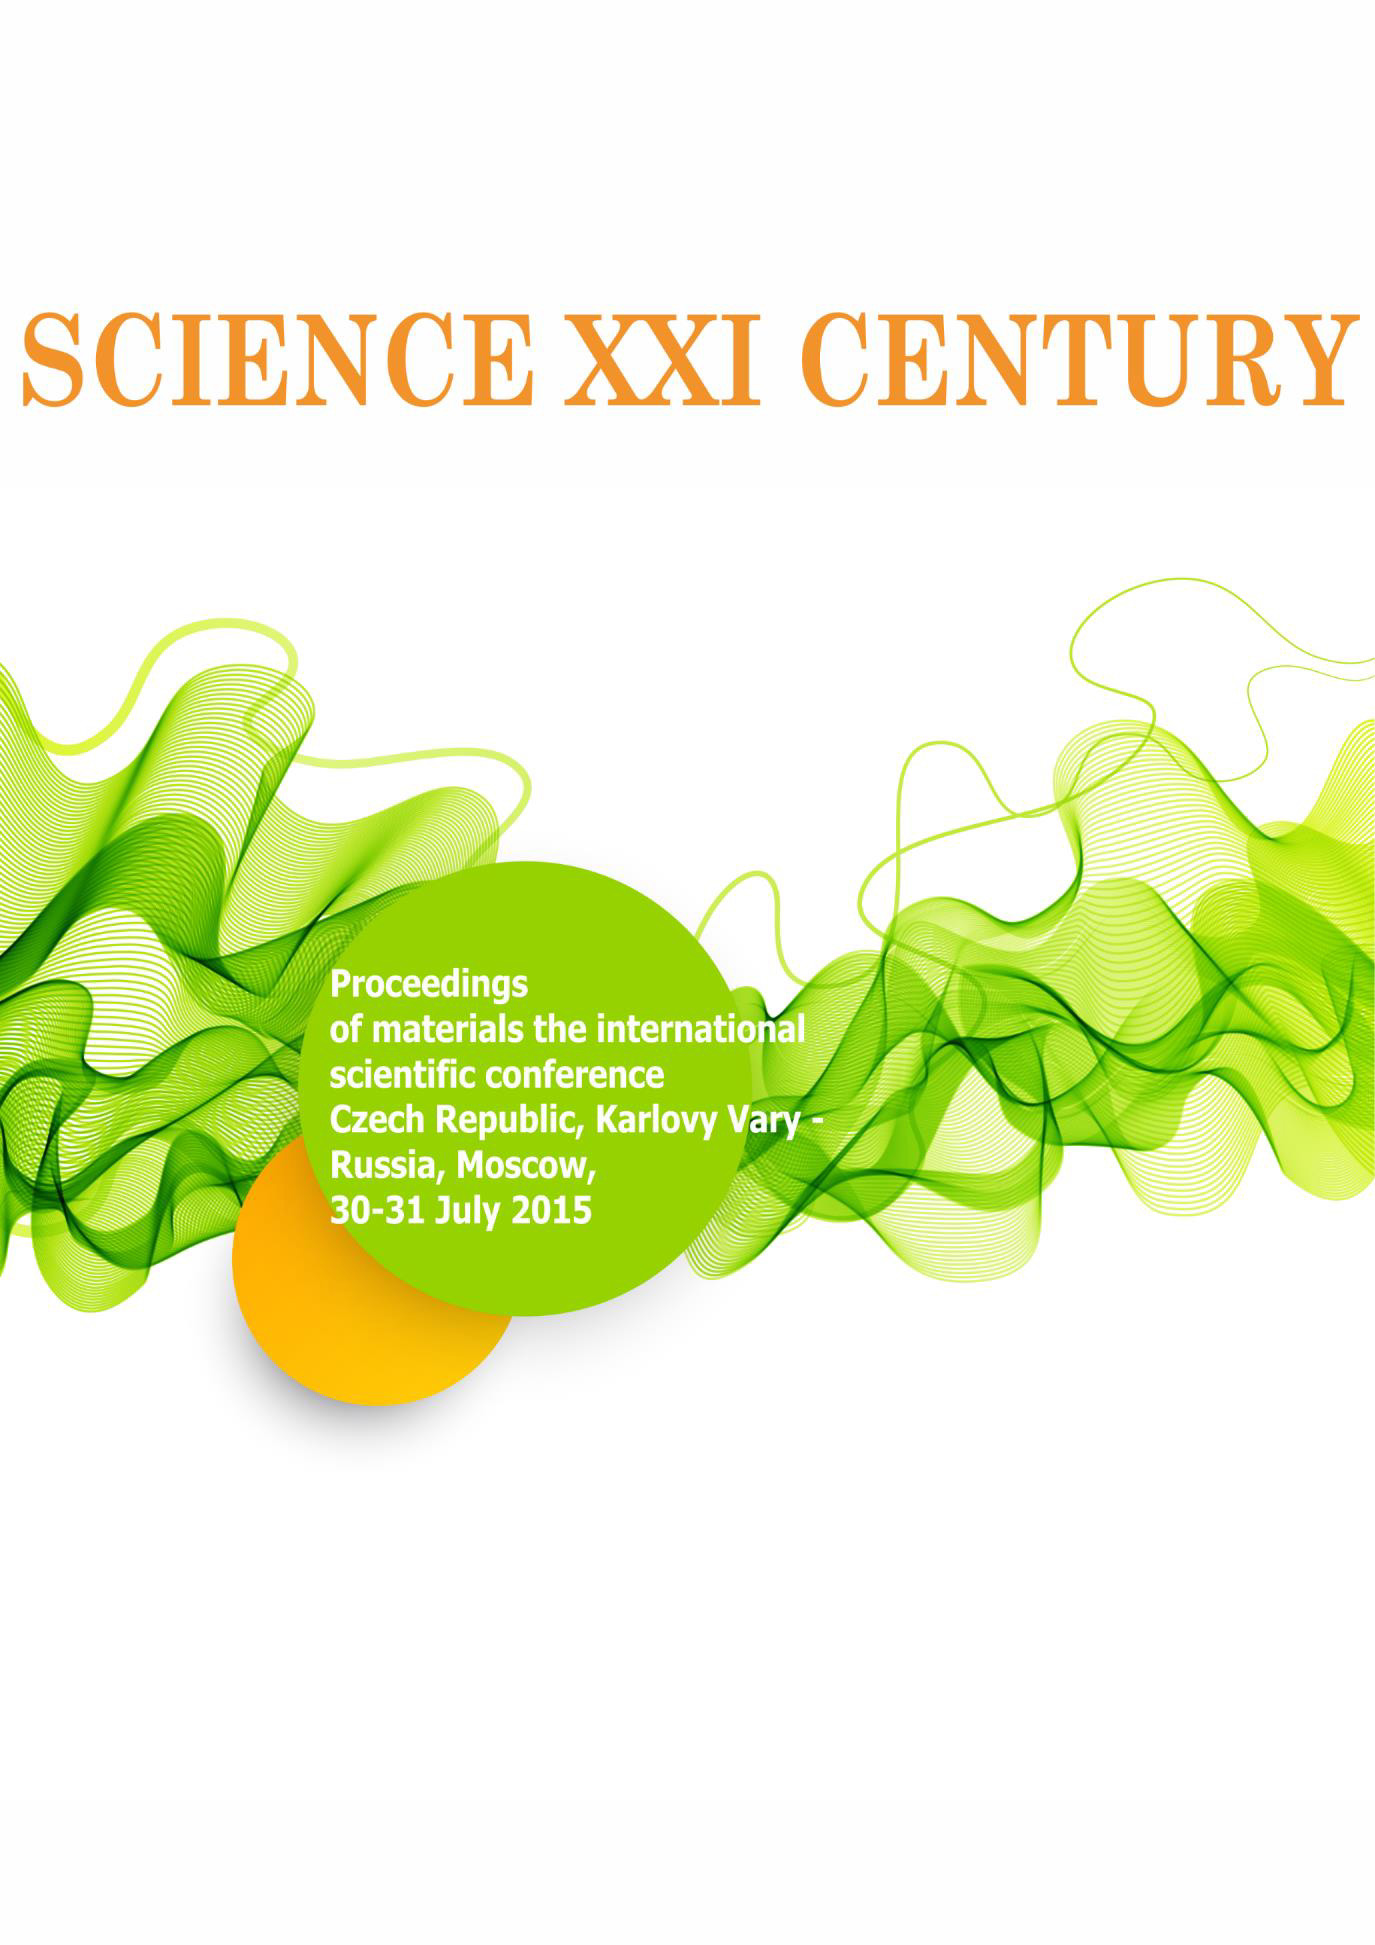 Сборник статей Science XXI century. Proceedings of materials the international scientific conference. Czech Republic, Karlovy Vary – Russia, Moscow, 30-31 July 2015 велопокрышка czech republic road bmx 20x2 20